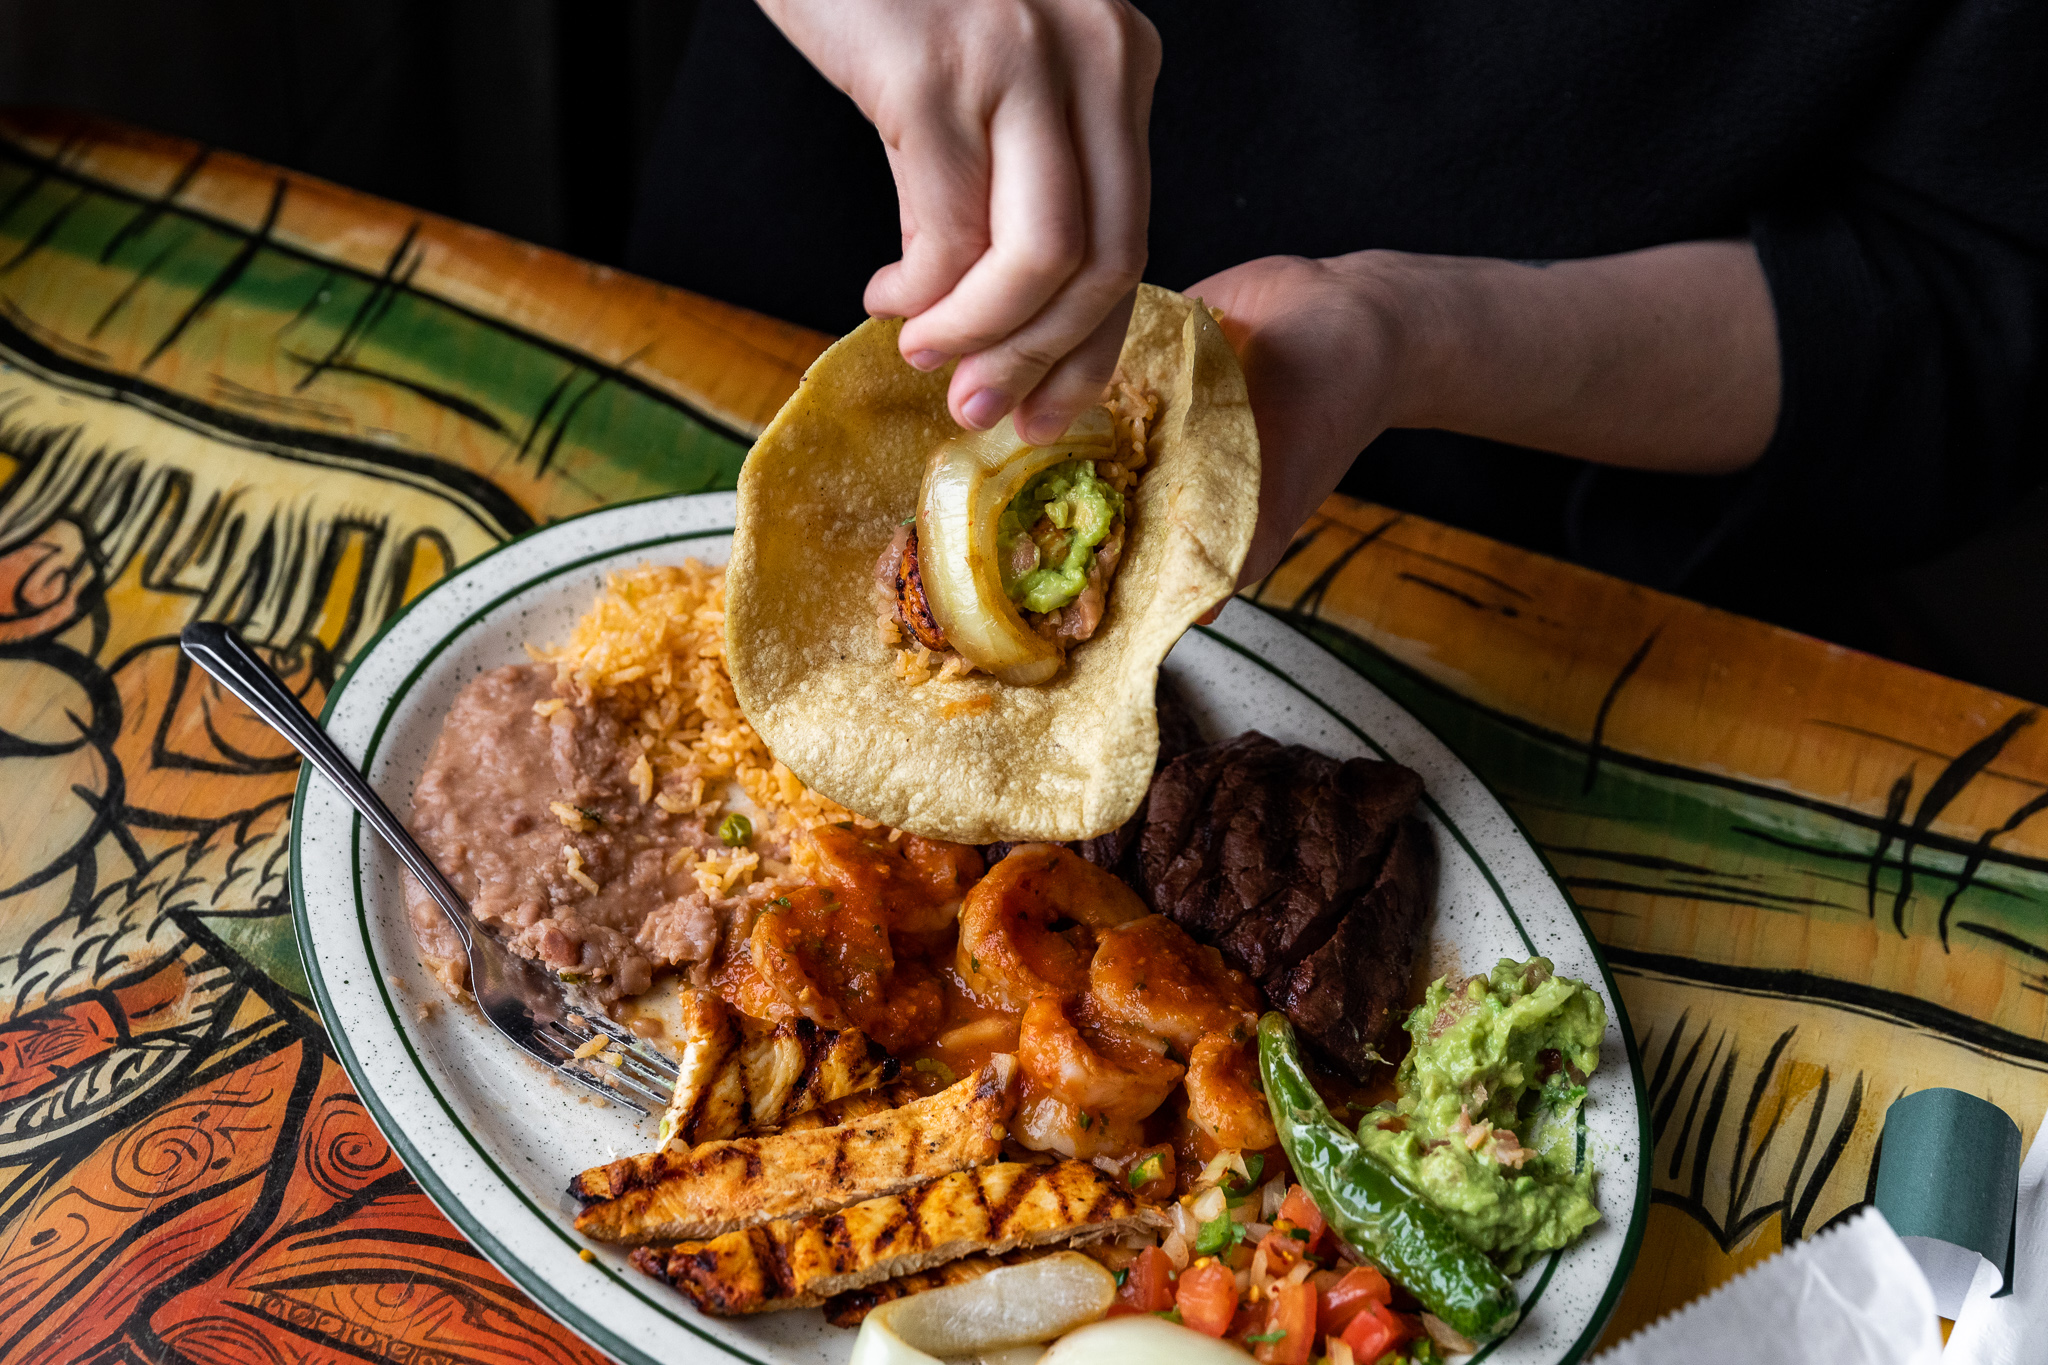 A hand places grilled onion into a tortilla above a plate of grilled chicken, rice, beans, and guacamole.